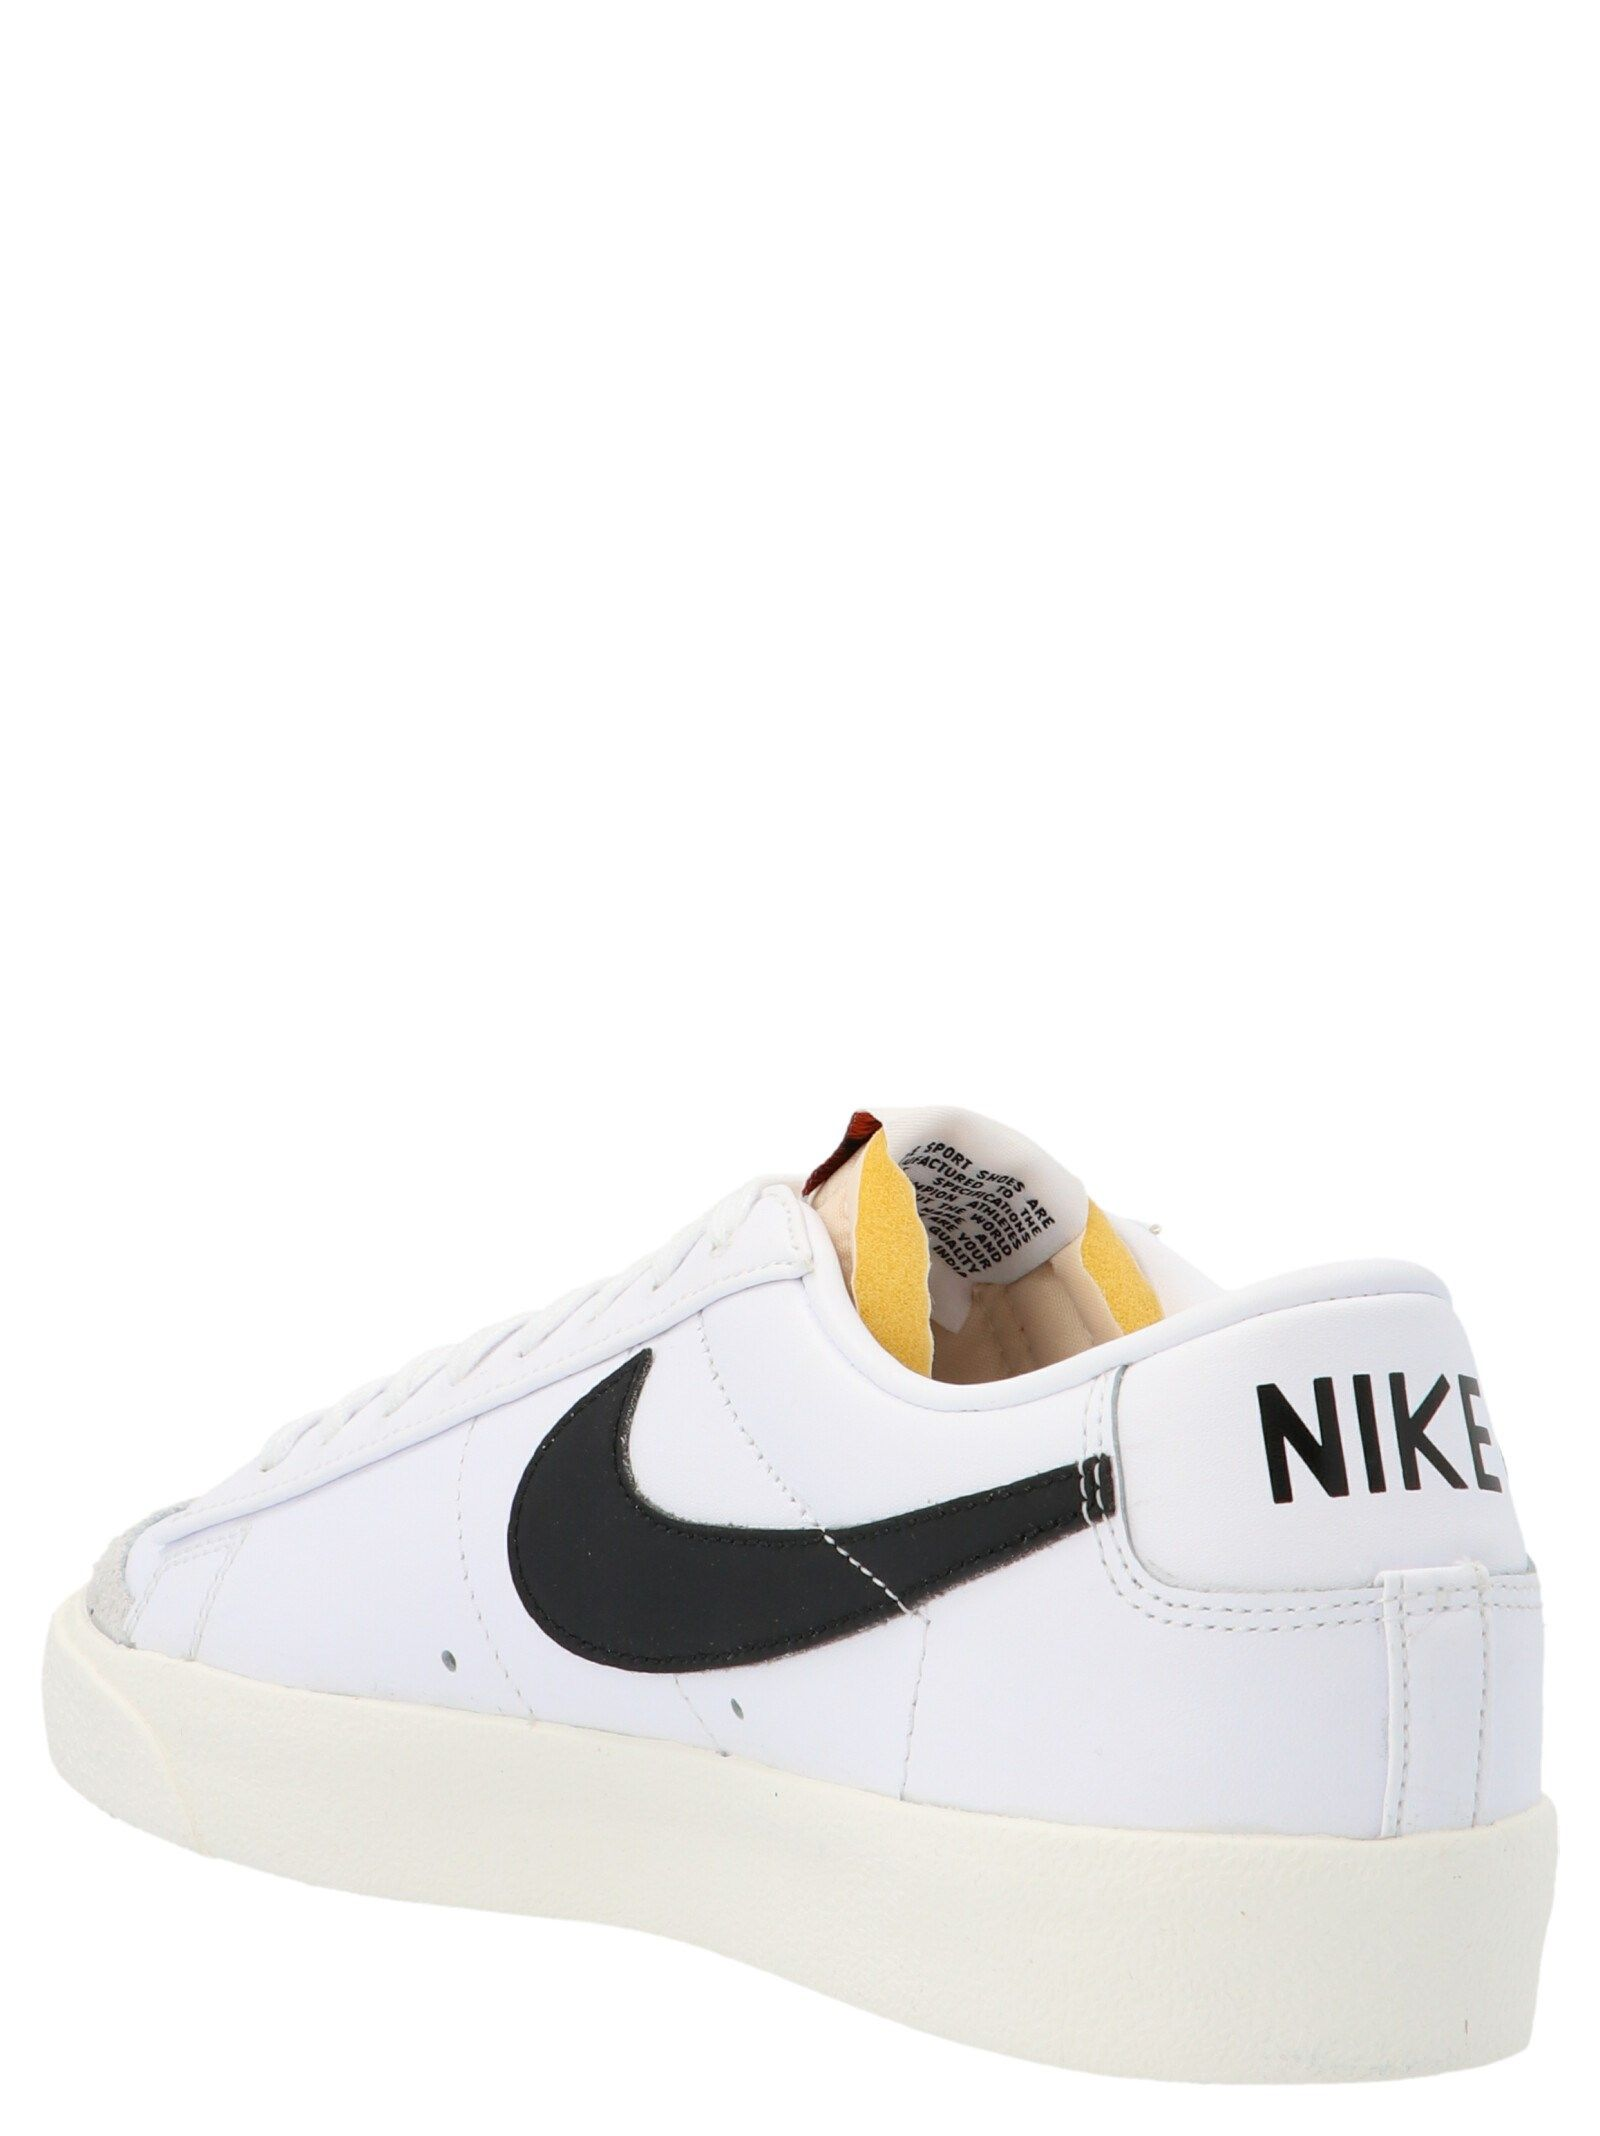 NIKE Sneakers NIKE MEN'S WHITE OTHER MATERIALS SNEAKERS